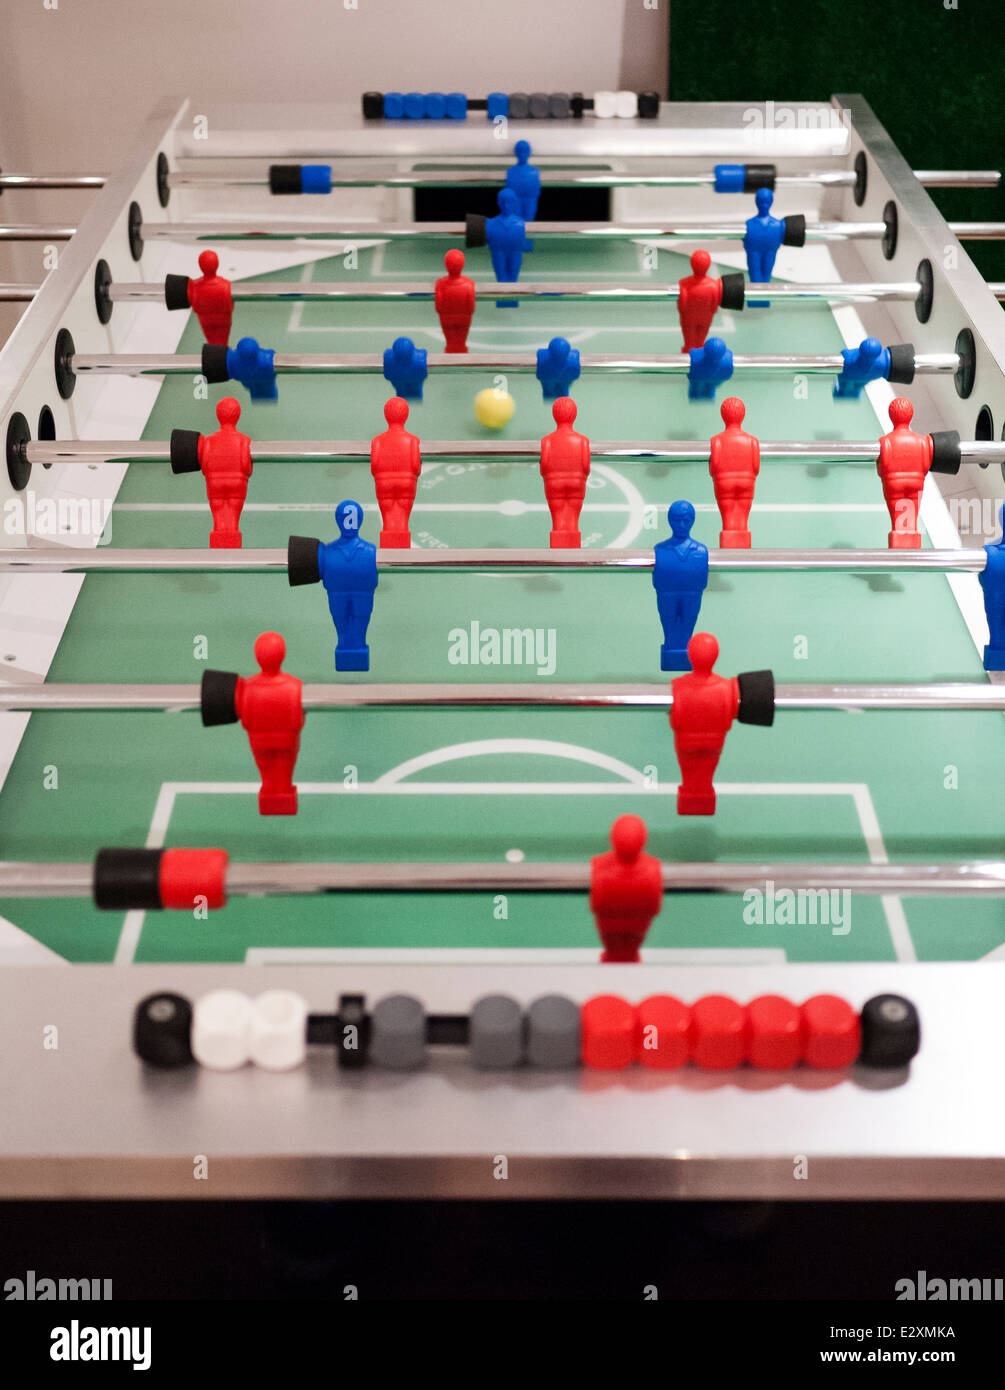 A game of fussball (table football) being played. Reds verses blues. - Stock Image